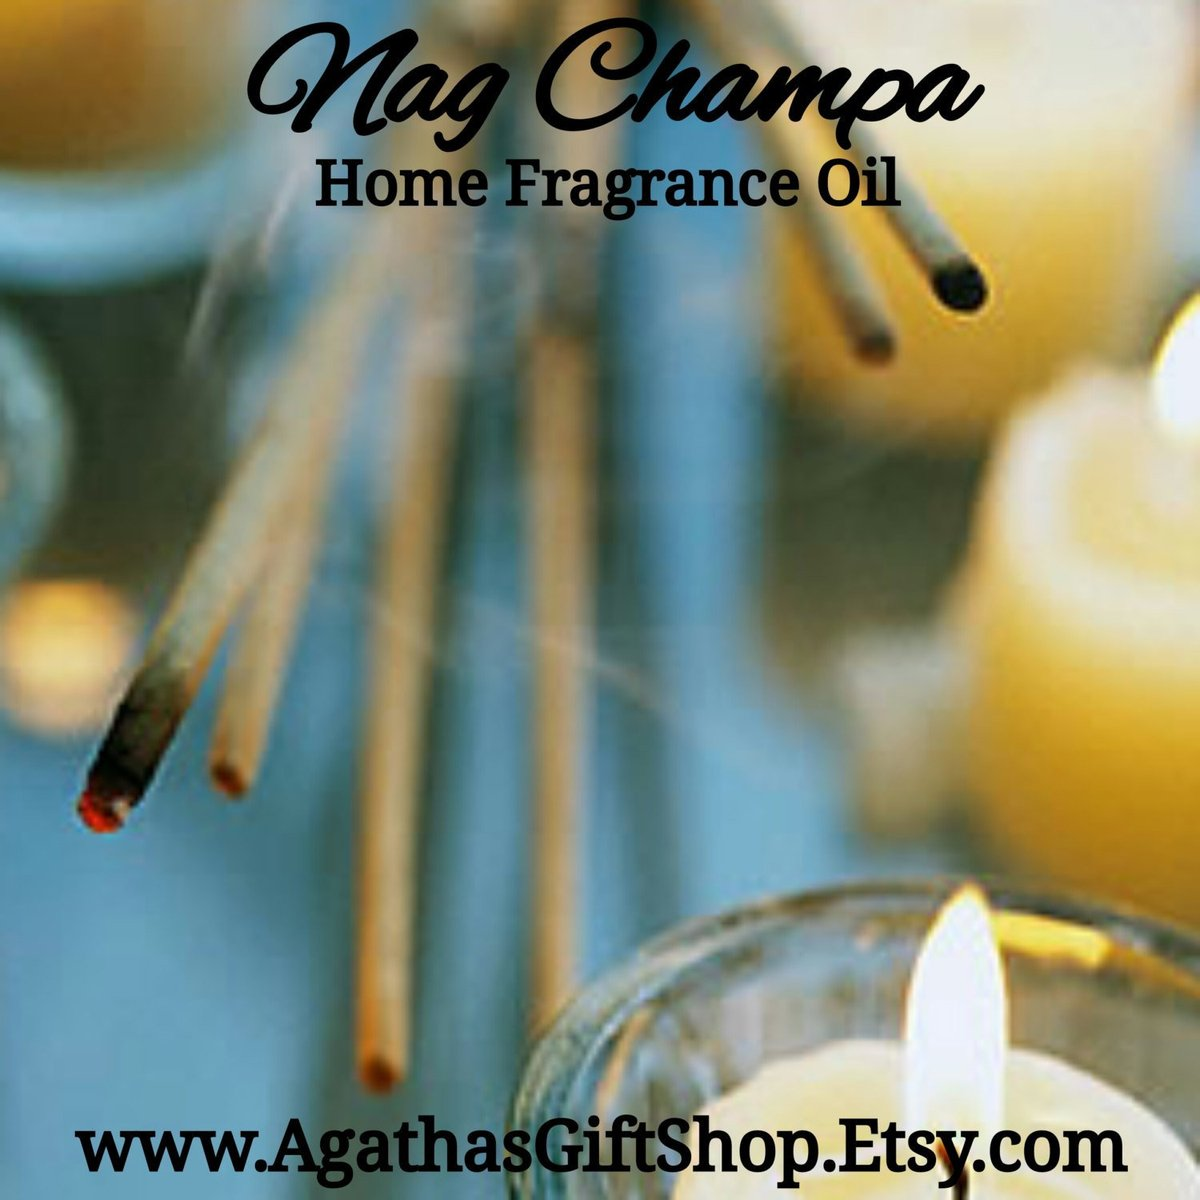 Nag Champa Home Fragrance Diffuser Warmer Aromatherapy Burning Oil  #GiftShopSale #Wedding #HerbalRemedies #AromatherapyOil #PerfumeBodyOils #Etsy #Incense #CyberMonday #BlackFriday #HomeFragranceOil #AromaOils